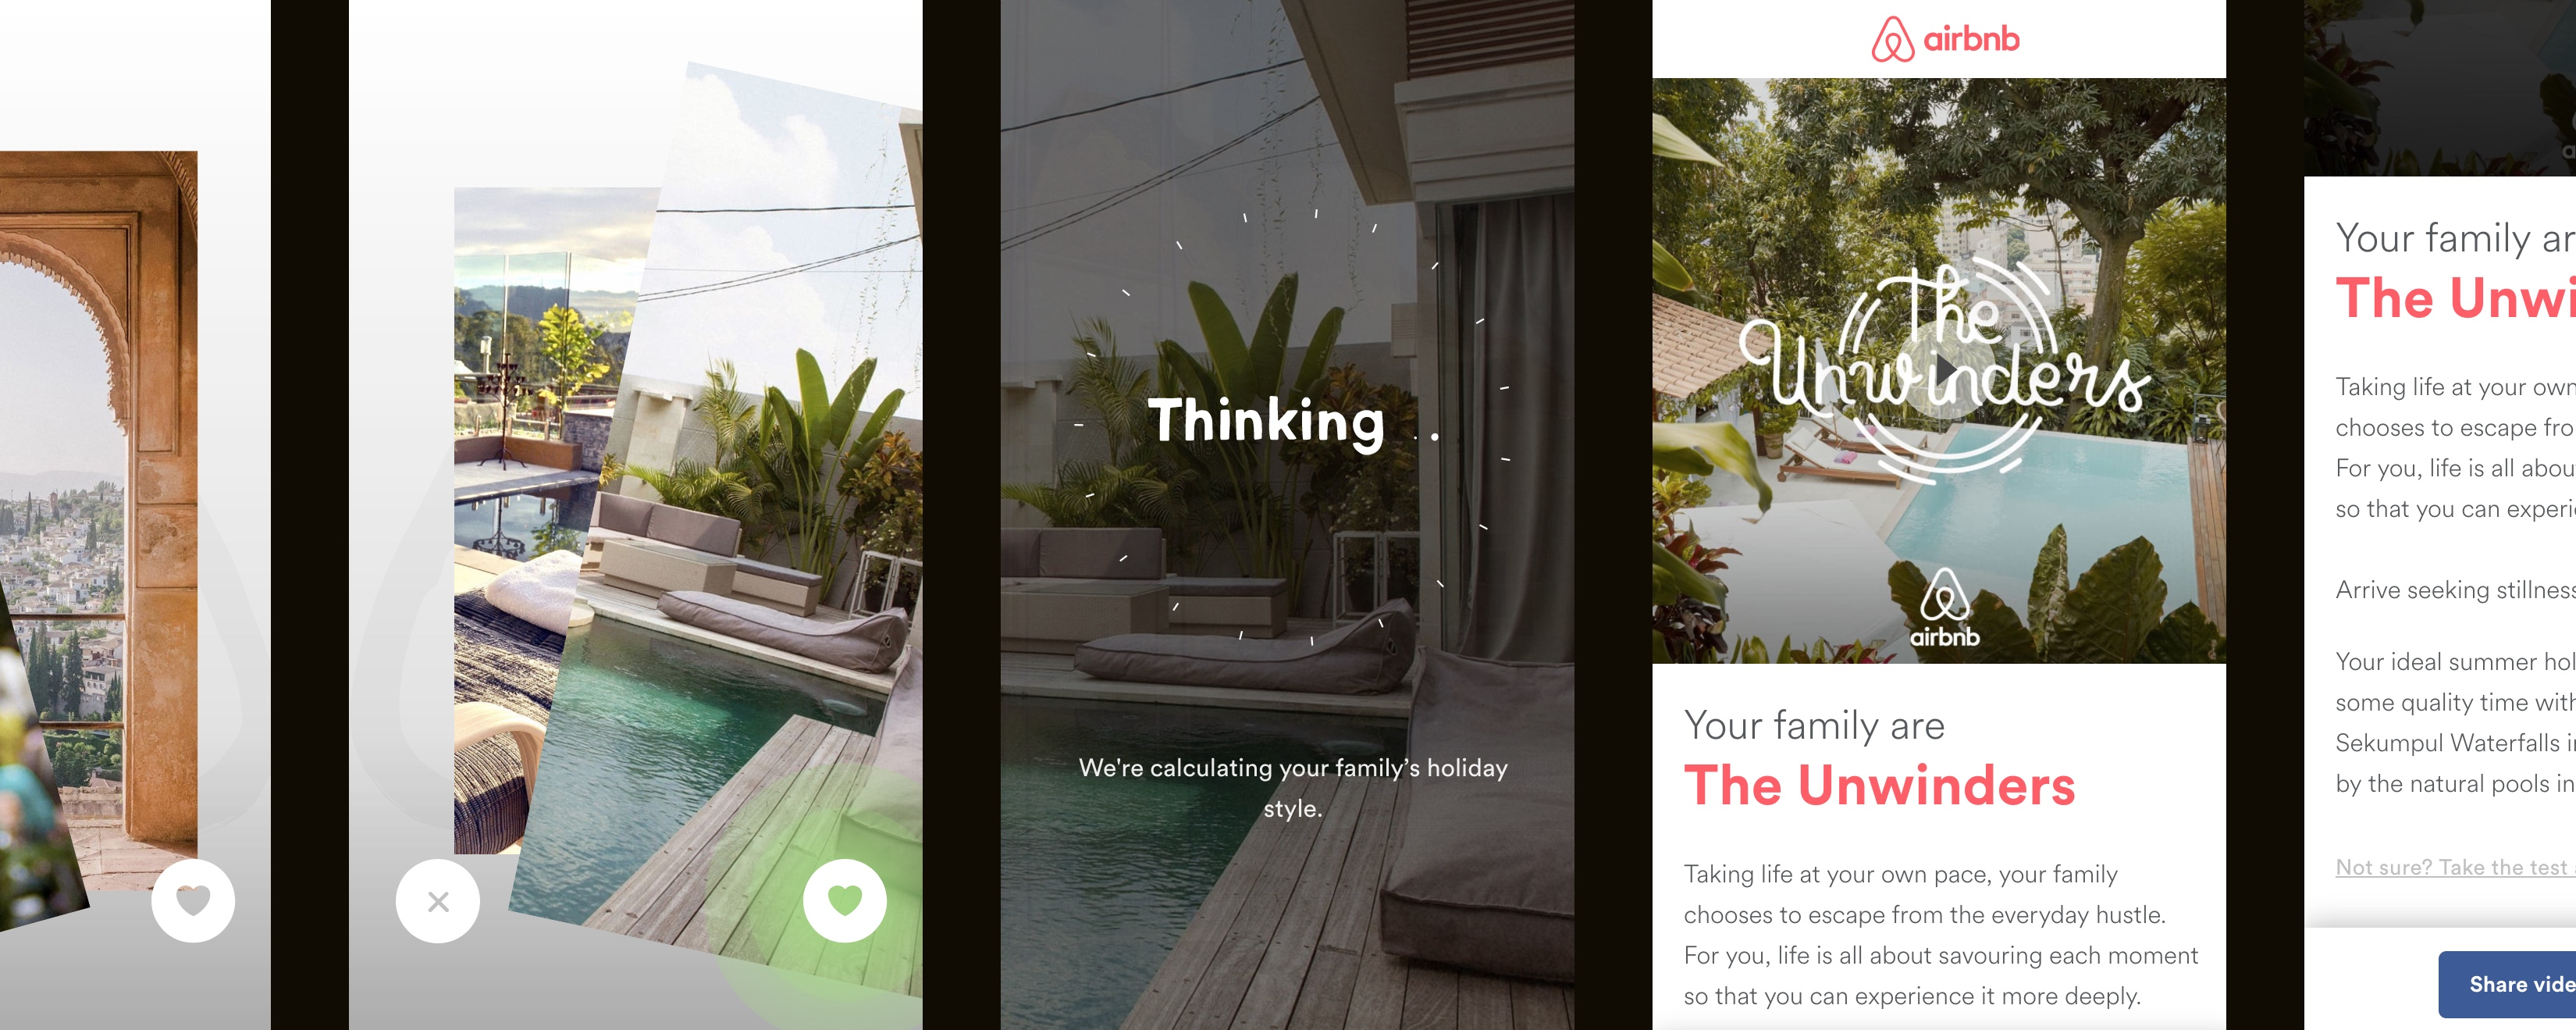 airbnb14—mobile2